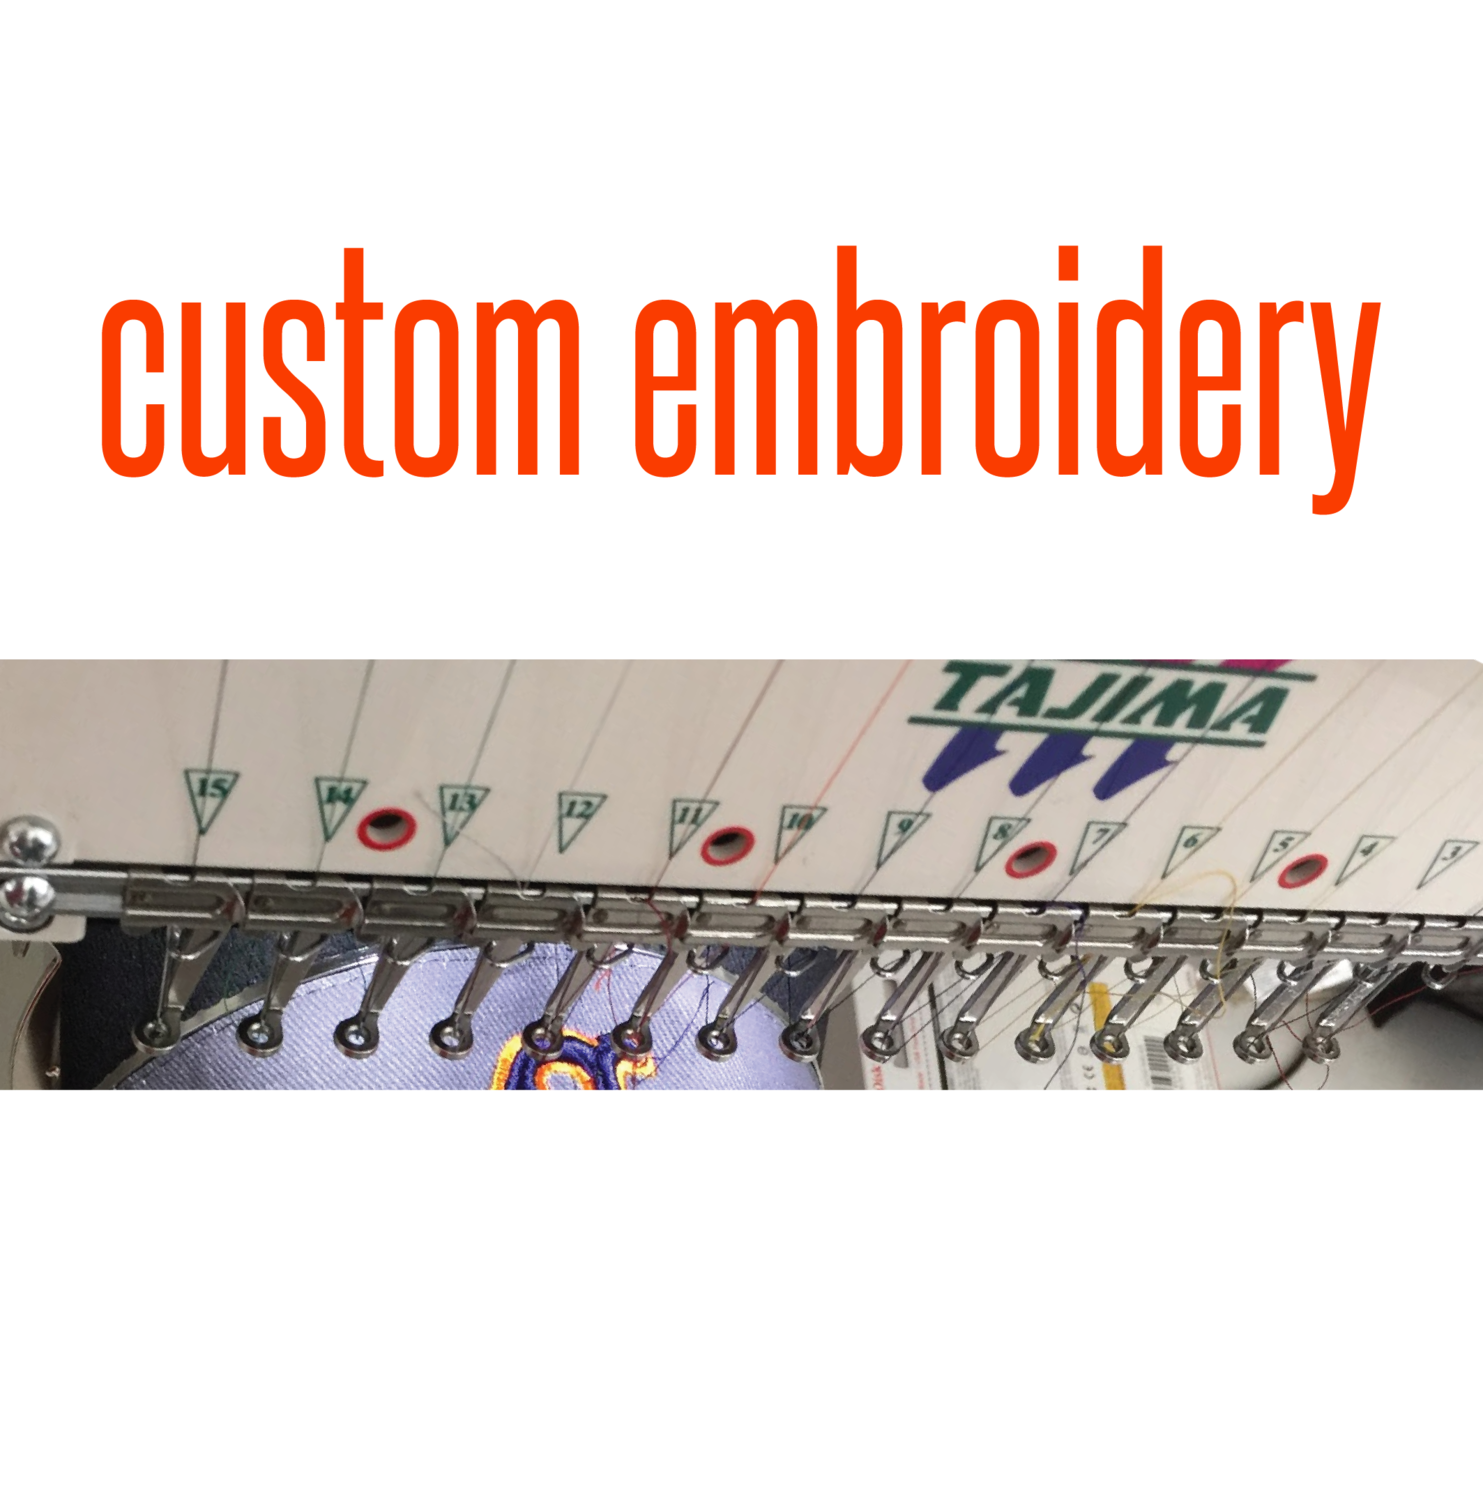 CUSTOM EMBROIDERY - blank apparel separate